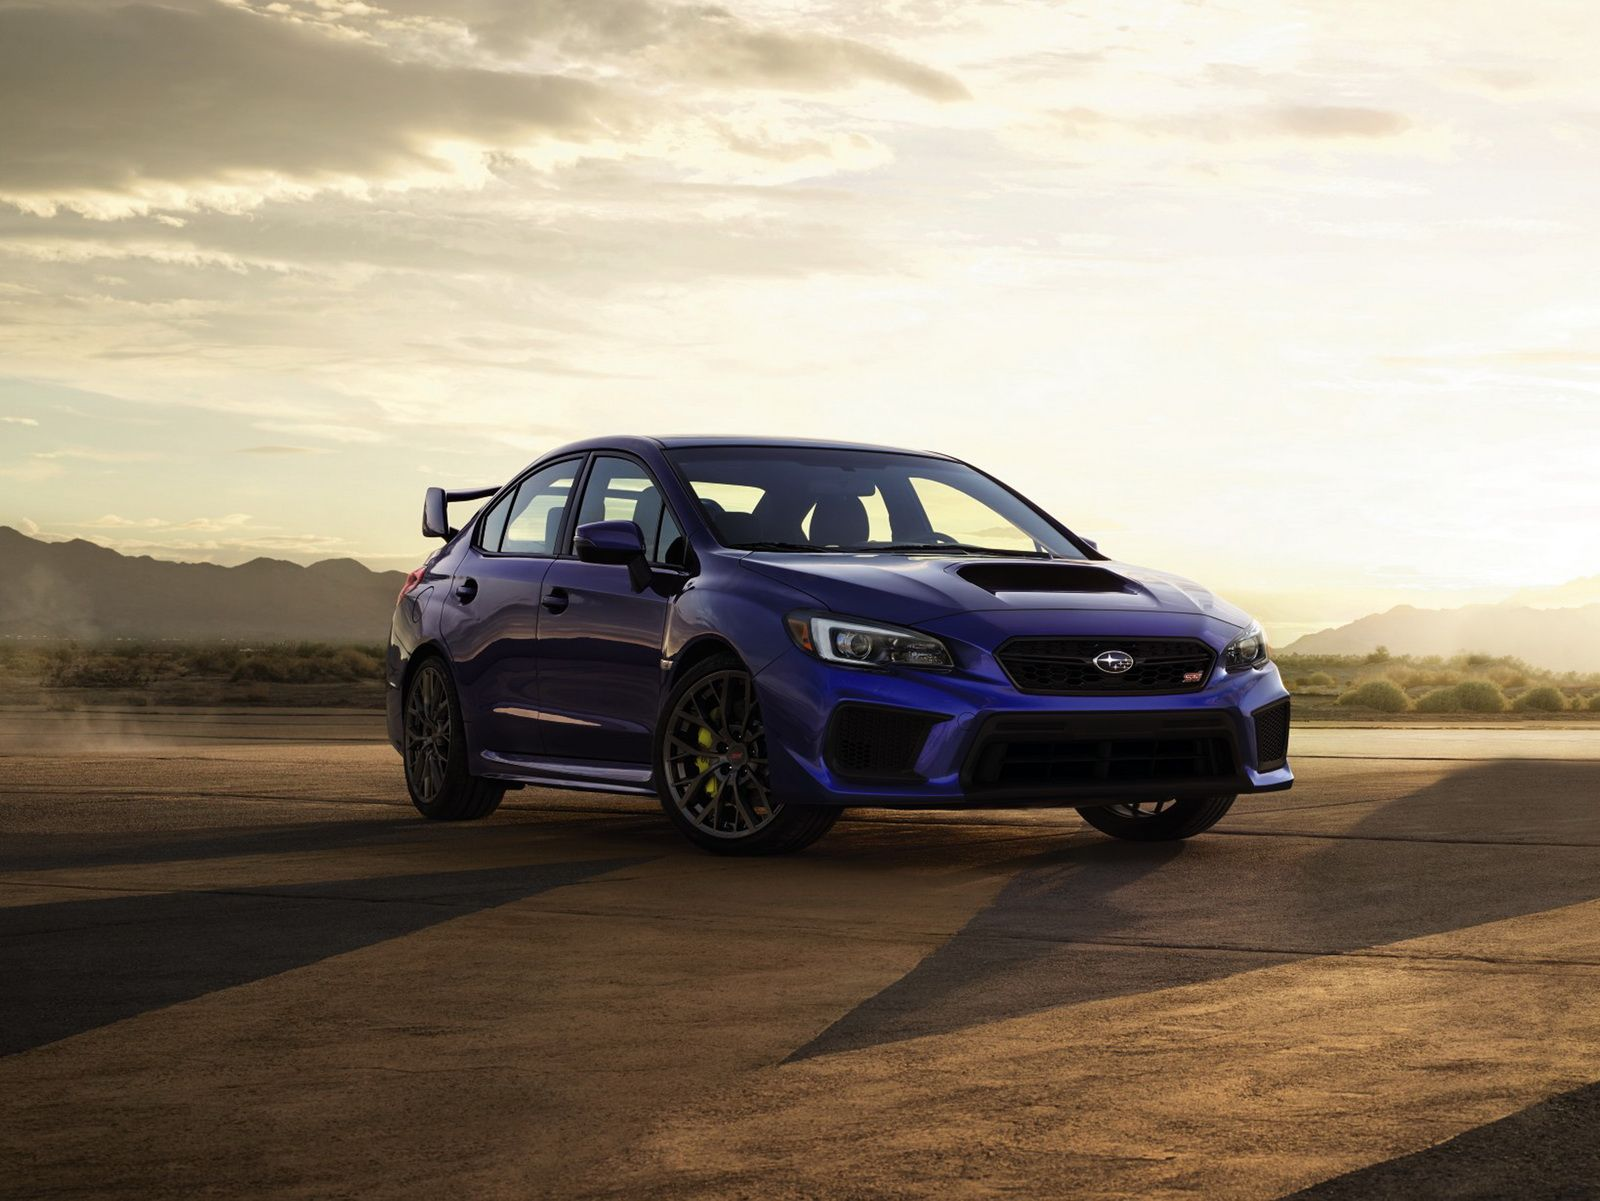 2018 subaru wrx wrx sti debut with styling revisions performance and safety upgrades